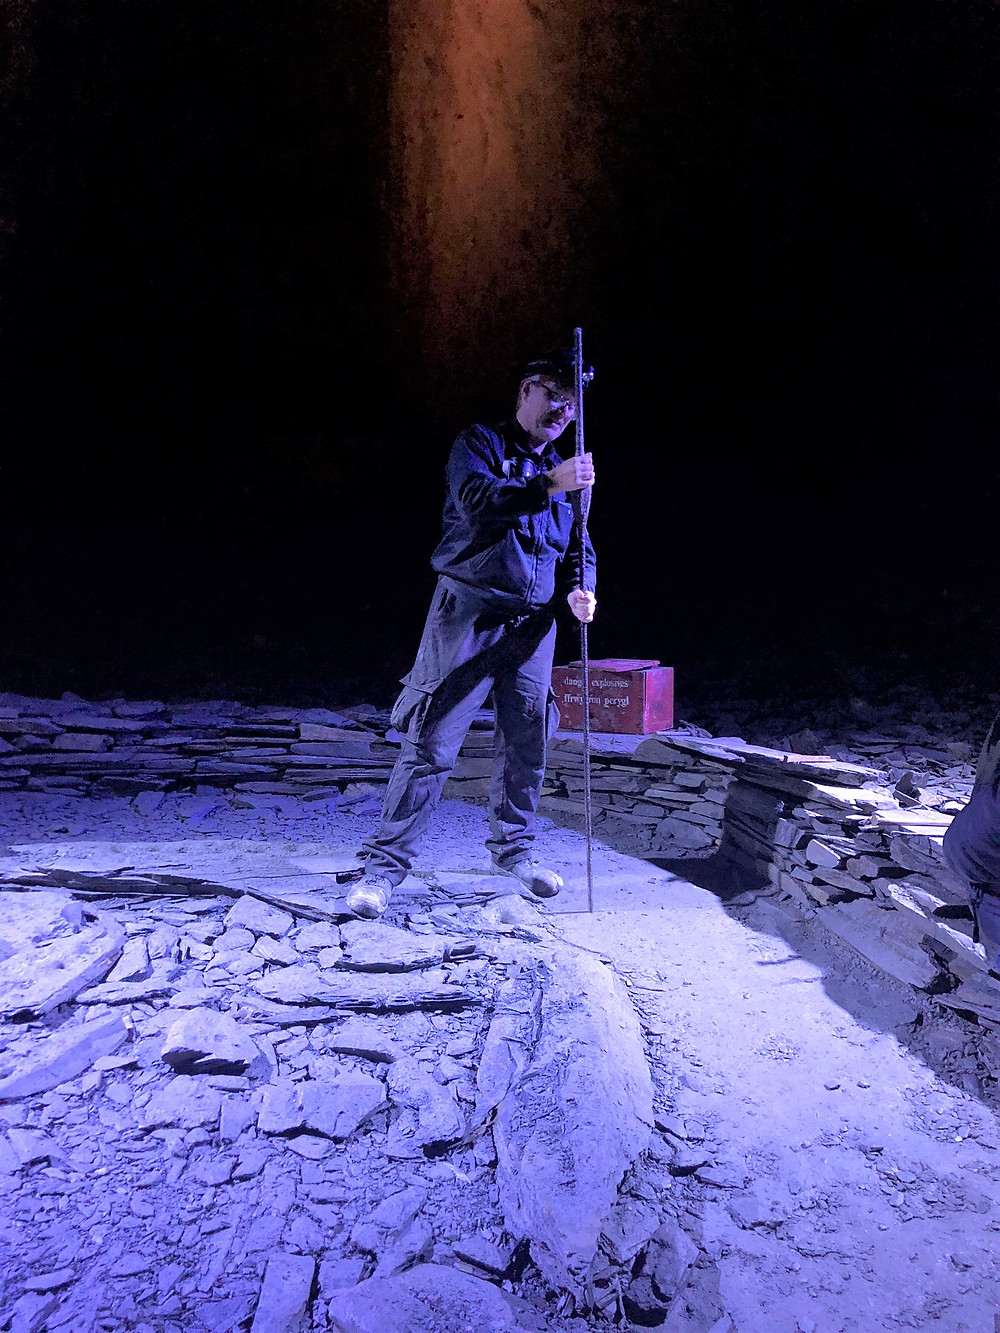 Guide demonstrating use of heavy hand tools used to make holes filled with gunpowder to open up slate chamber in Llechwedd Slate Quarry